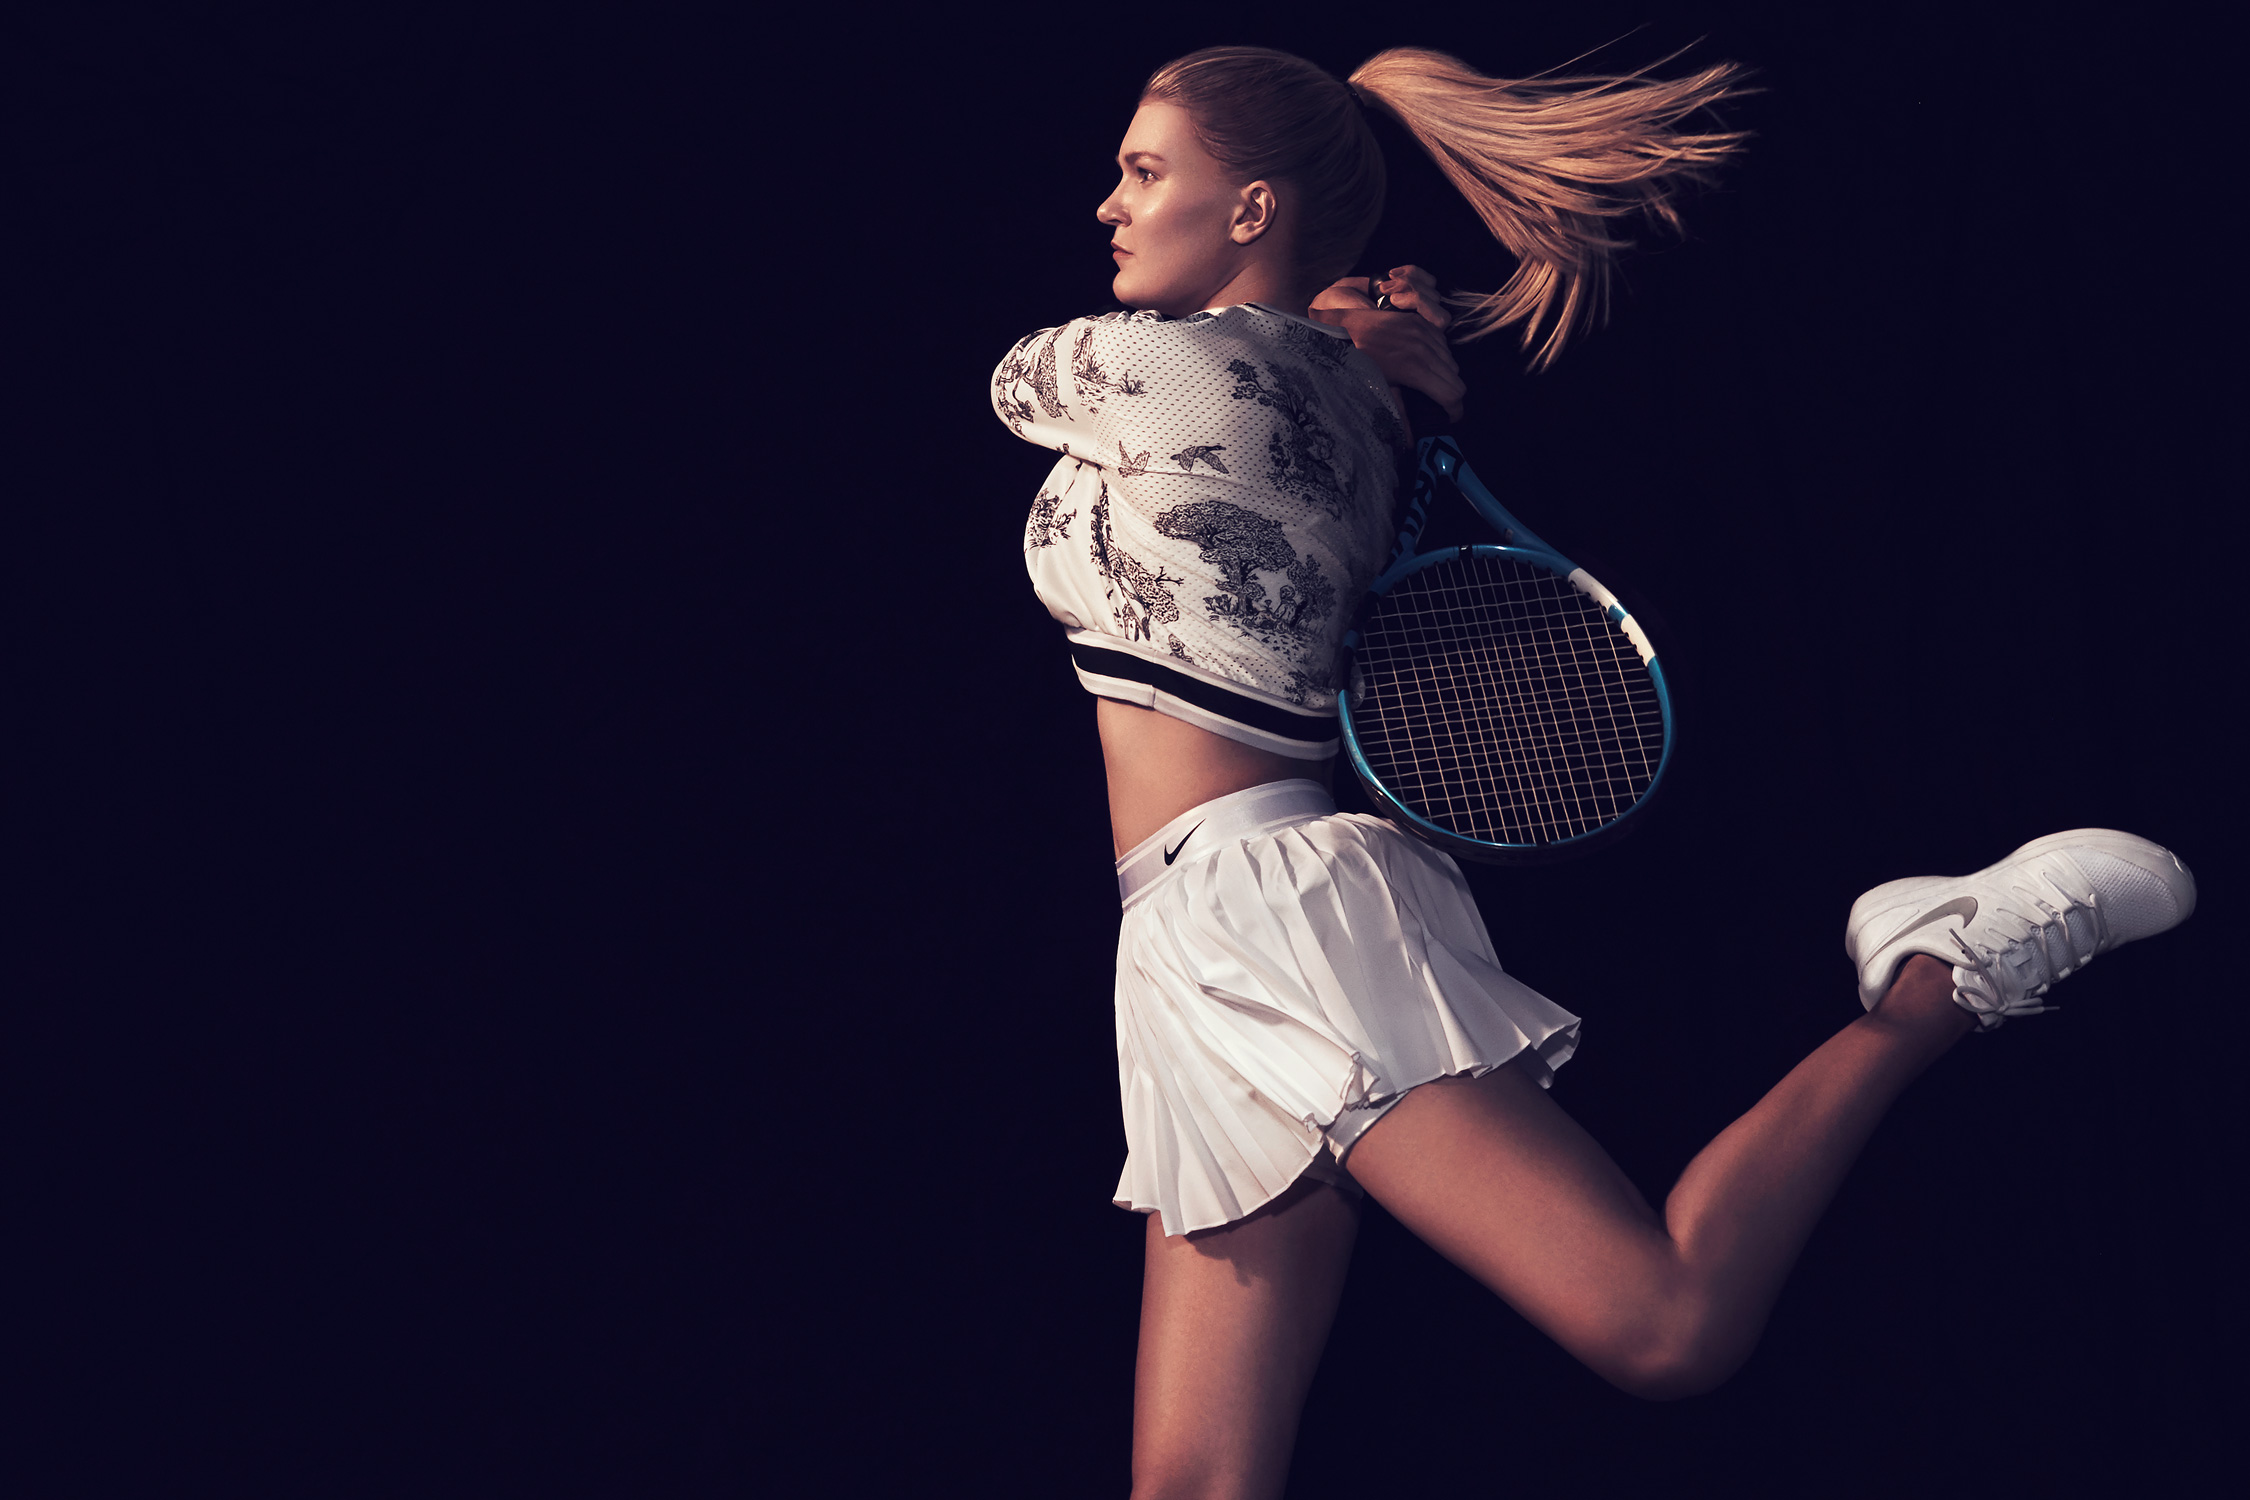 Nike Tennis - Stephen Denton Photography -  Los Angeles, California based  Commercial Photographer